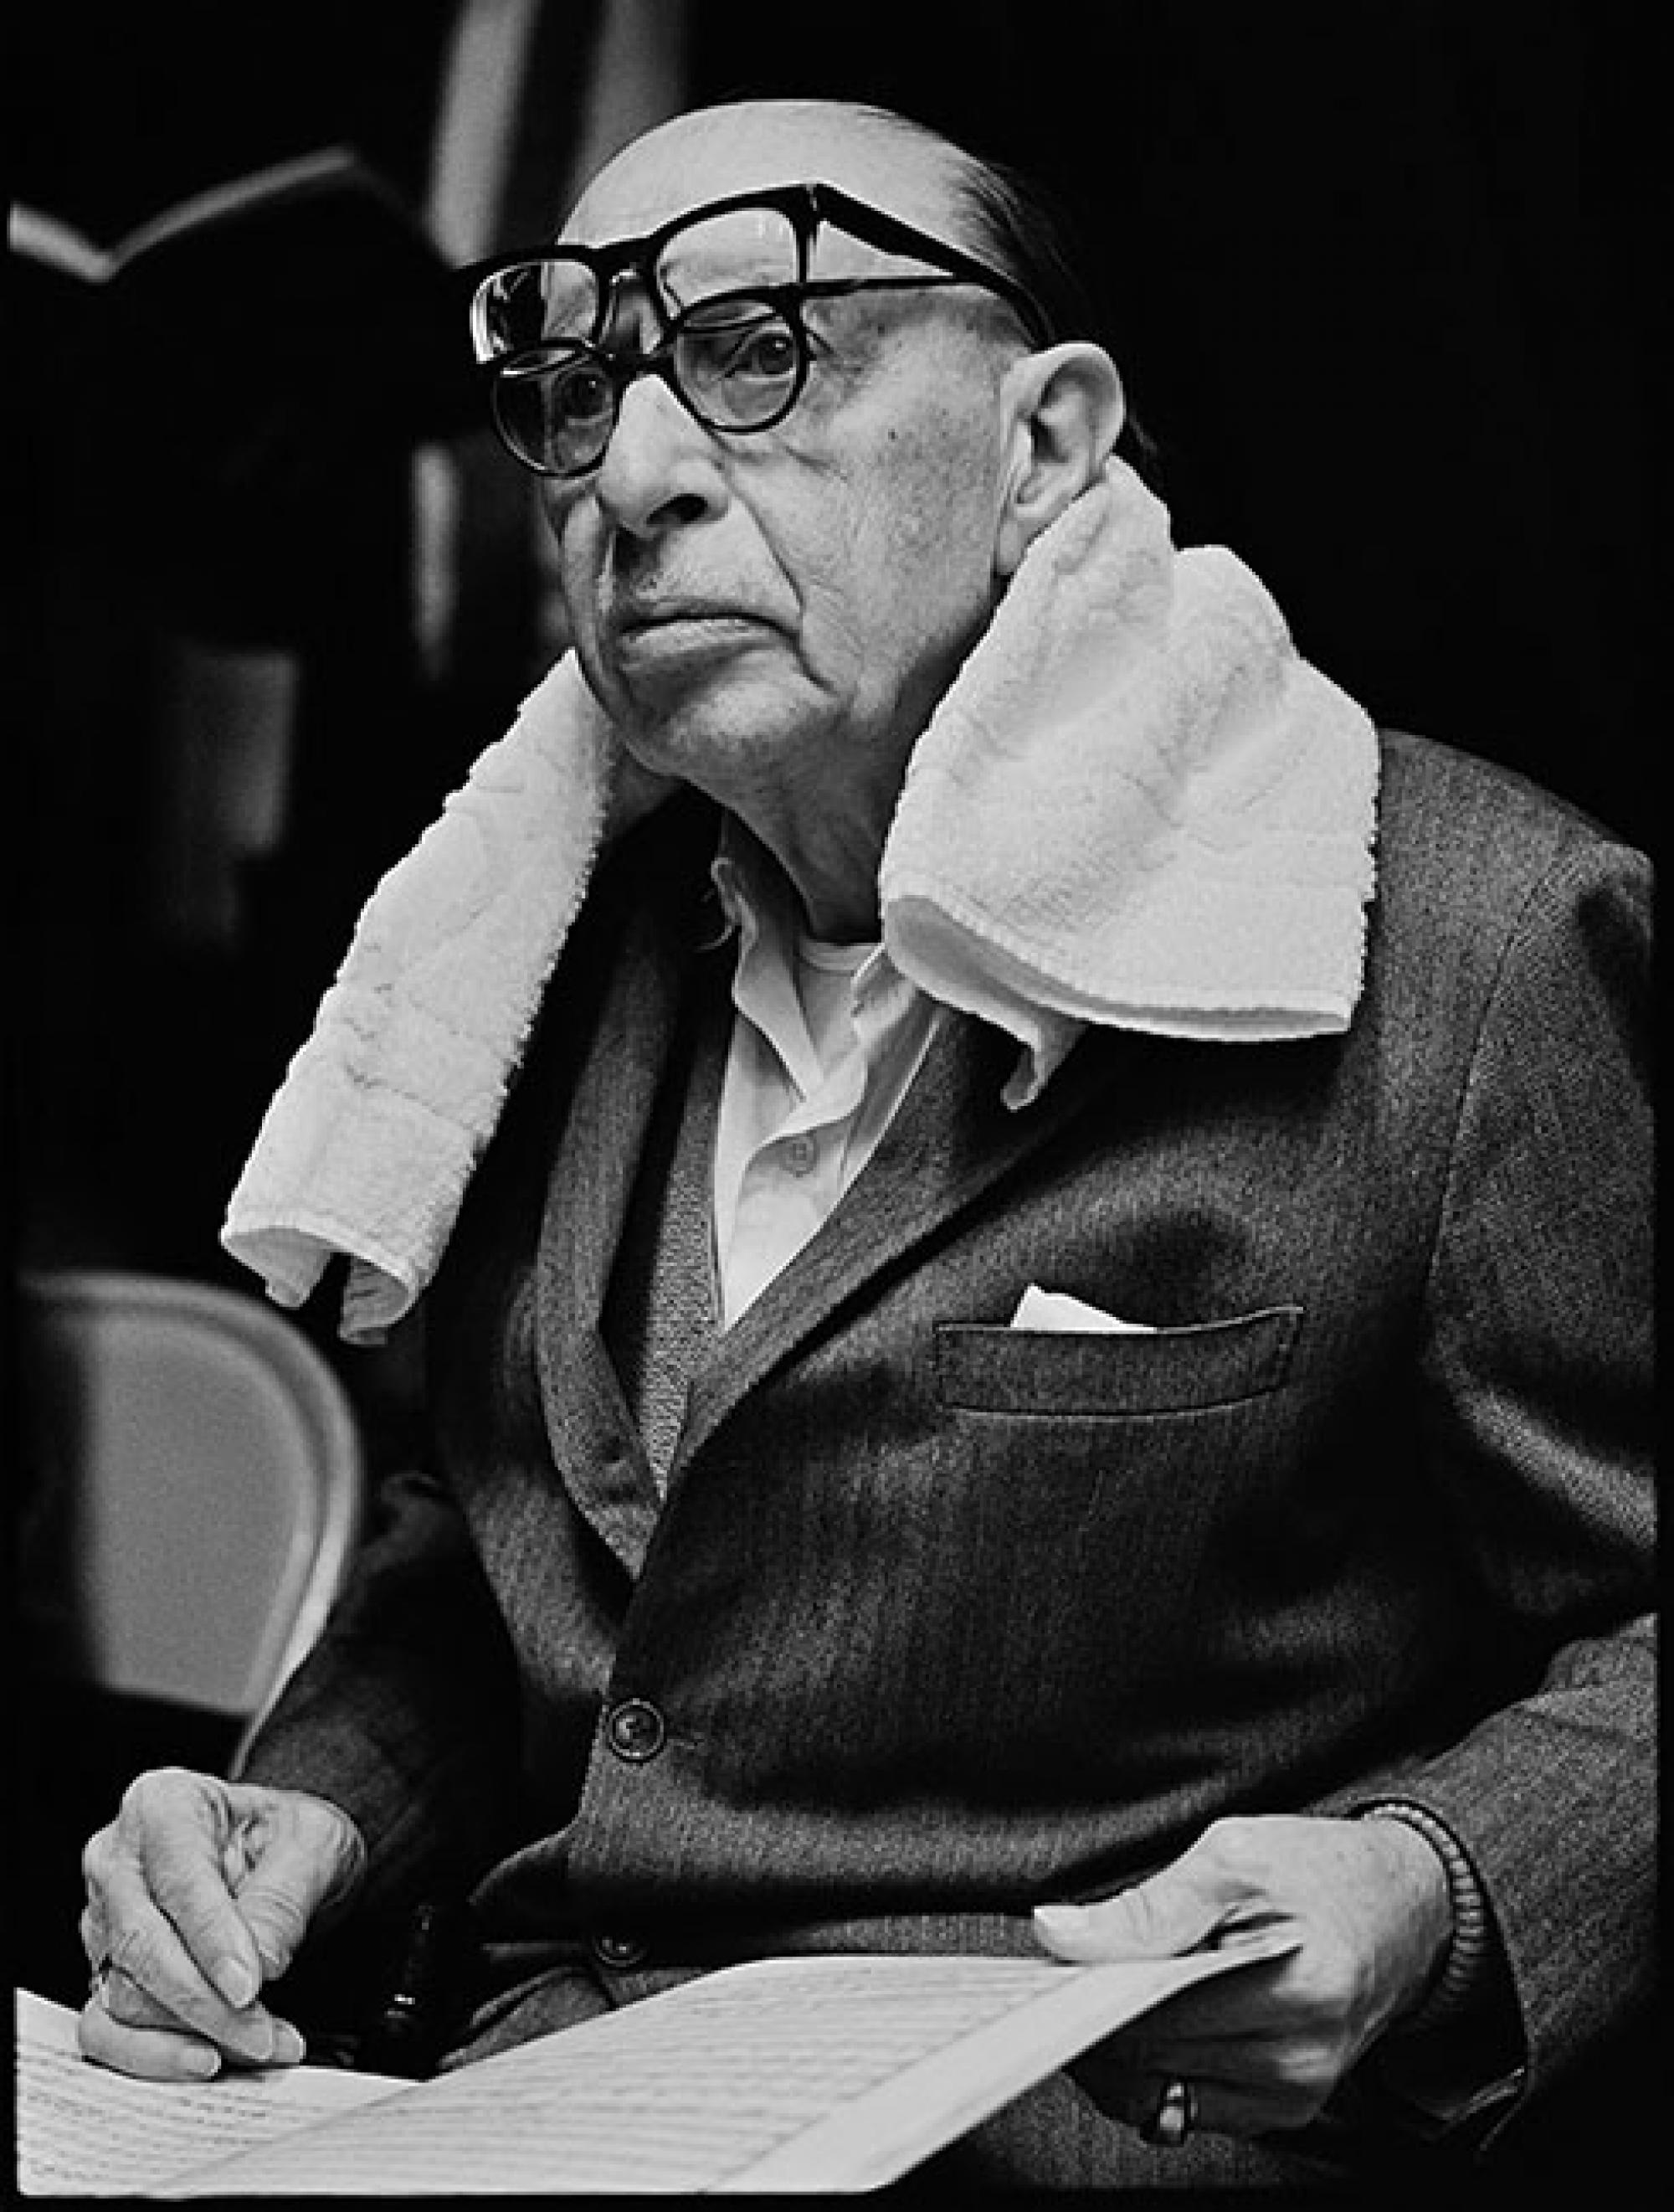 In 1966, Kennerly photographed Russian-American composer Igor Stravinsky prior to a concert where Stravinsky conducted the then-Portland Symphony.